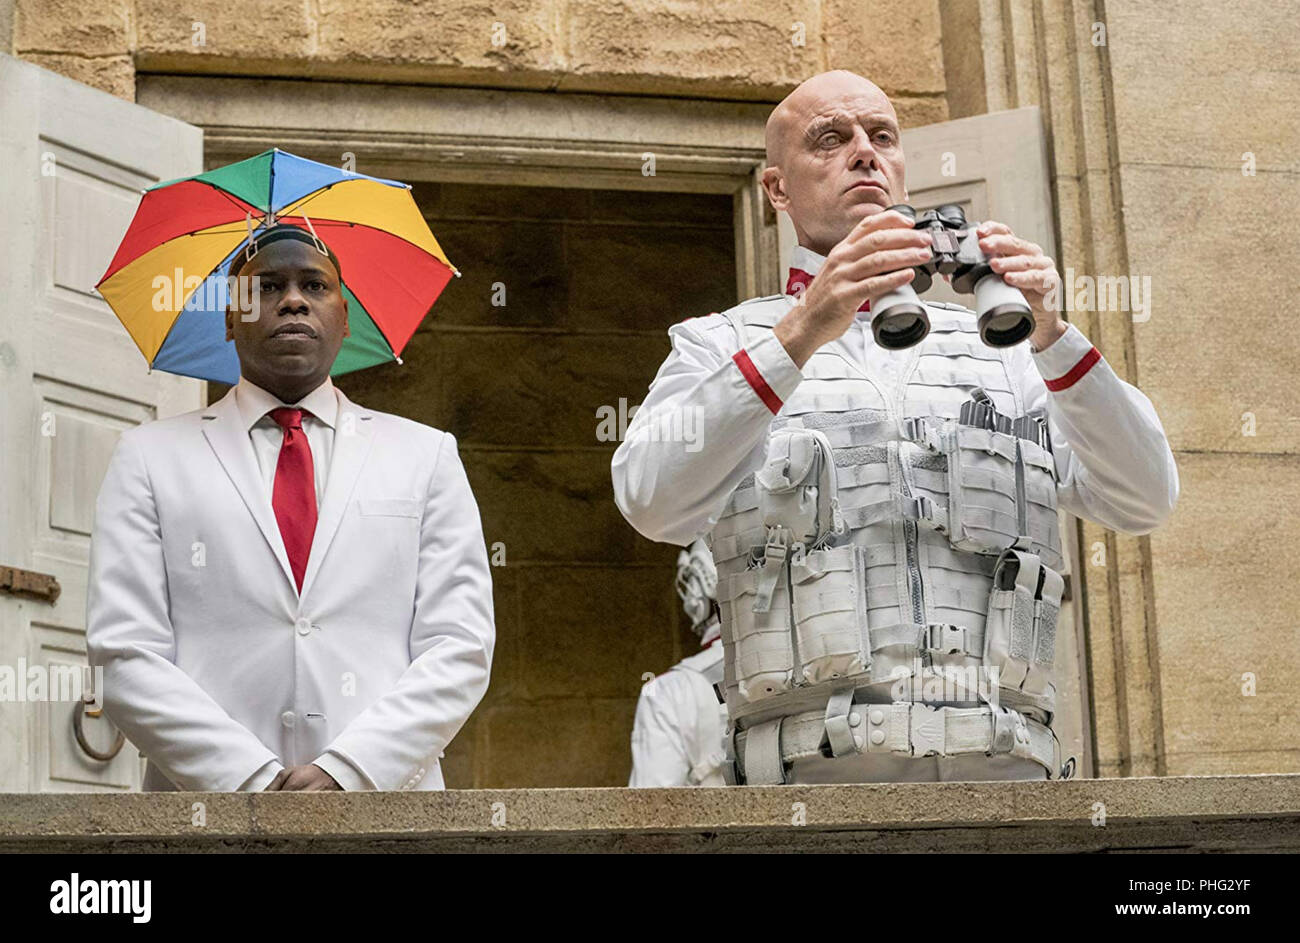 PREACHER 2016 AMC/Sony Pictures film Malcolm Barrett at left and Pip Torrens - Stock Image